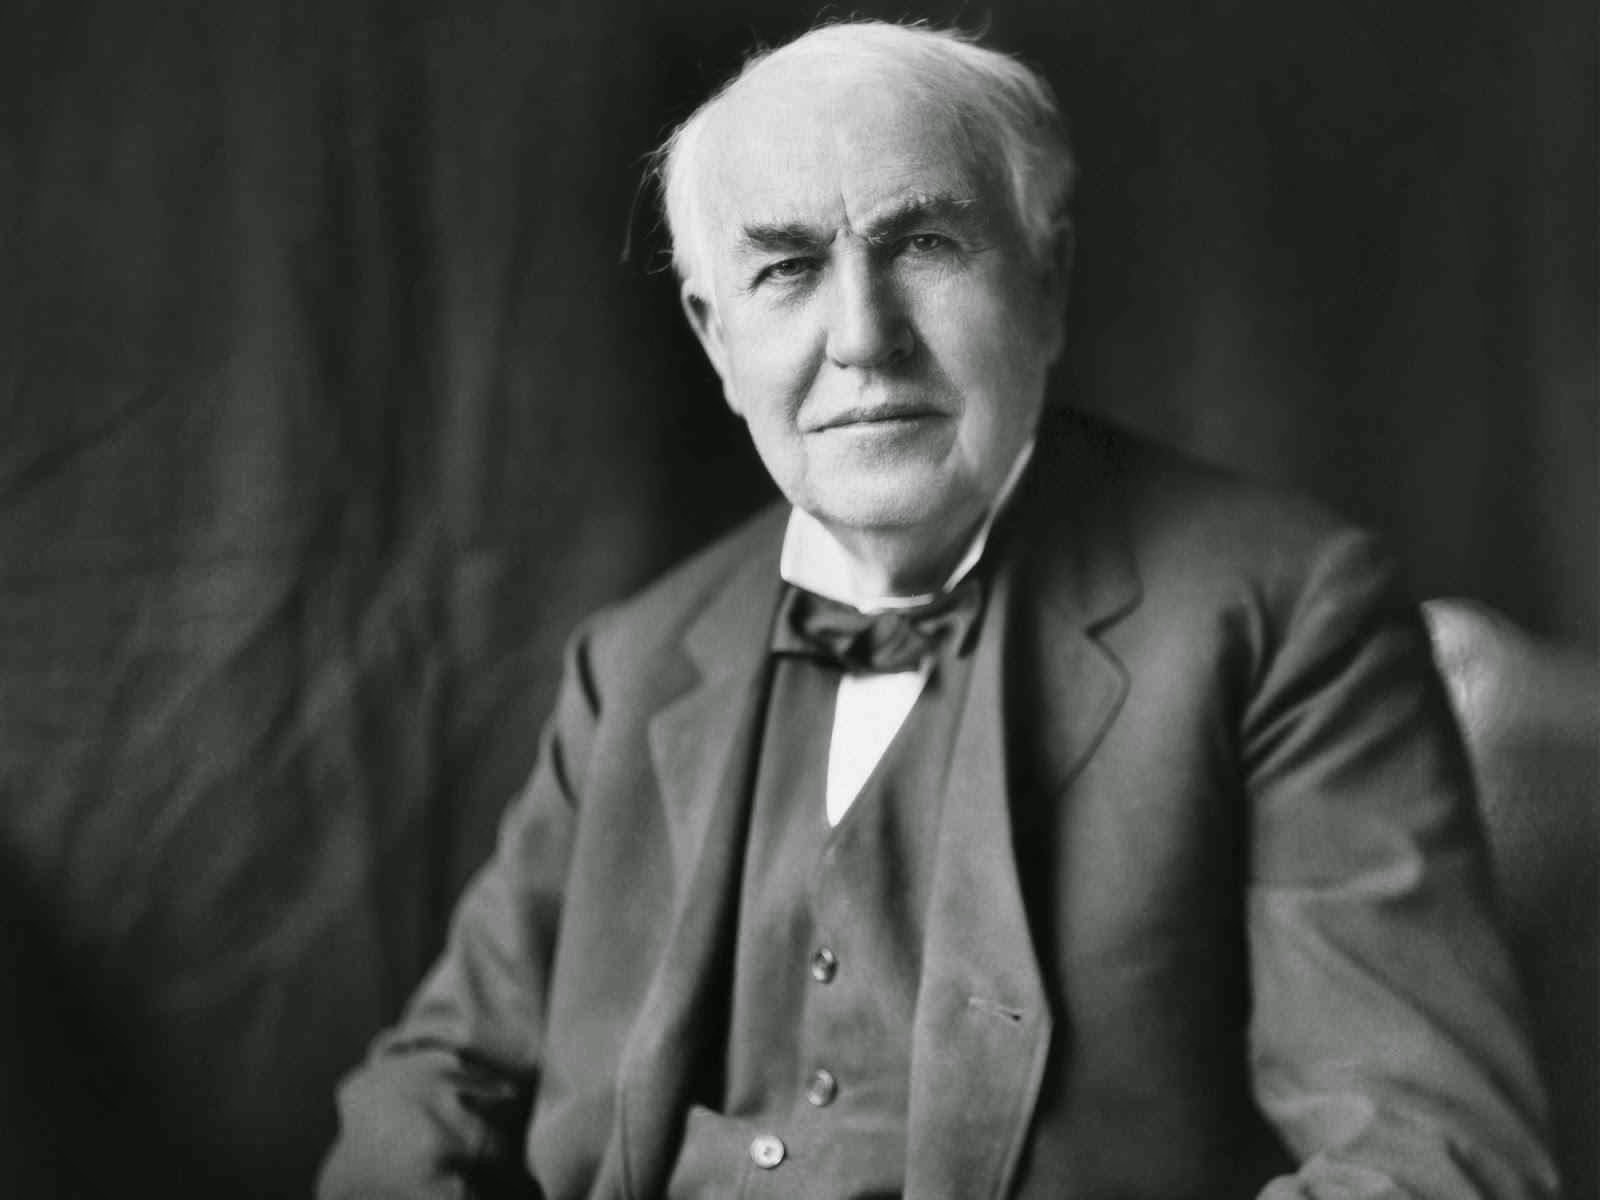 Scientist Thomas Edison Photo